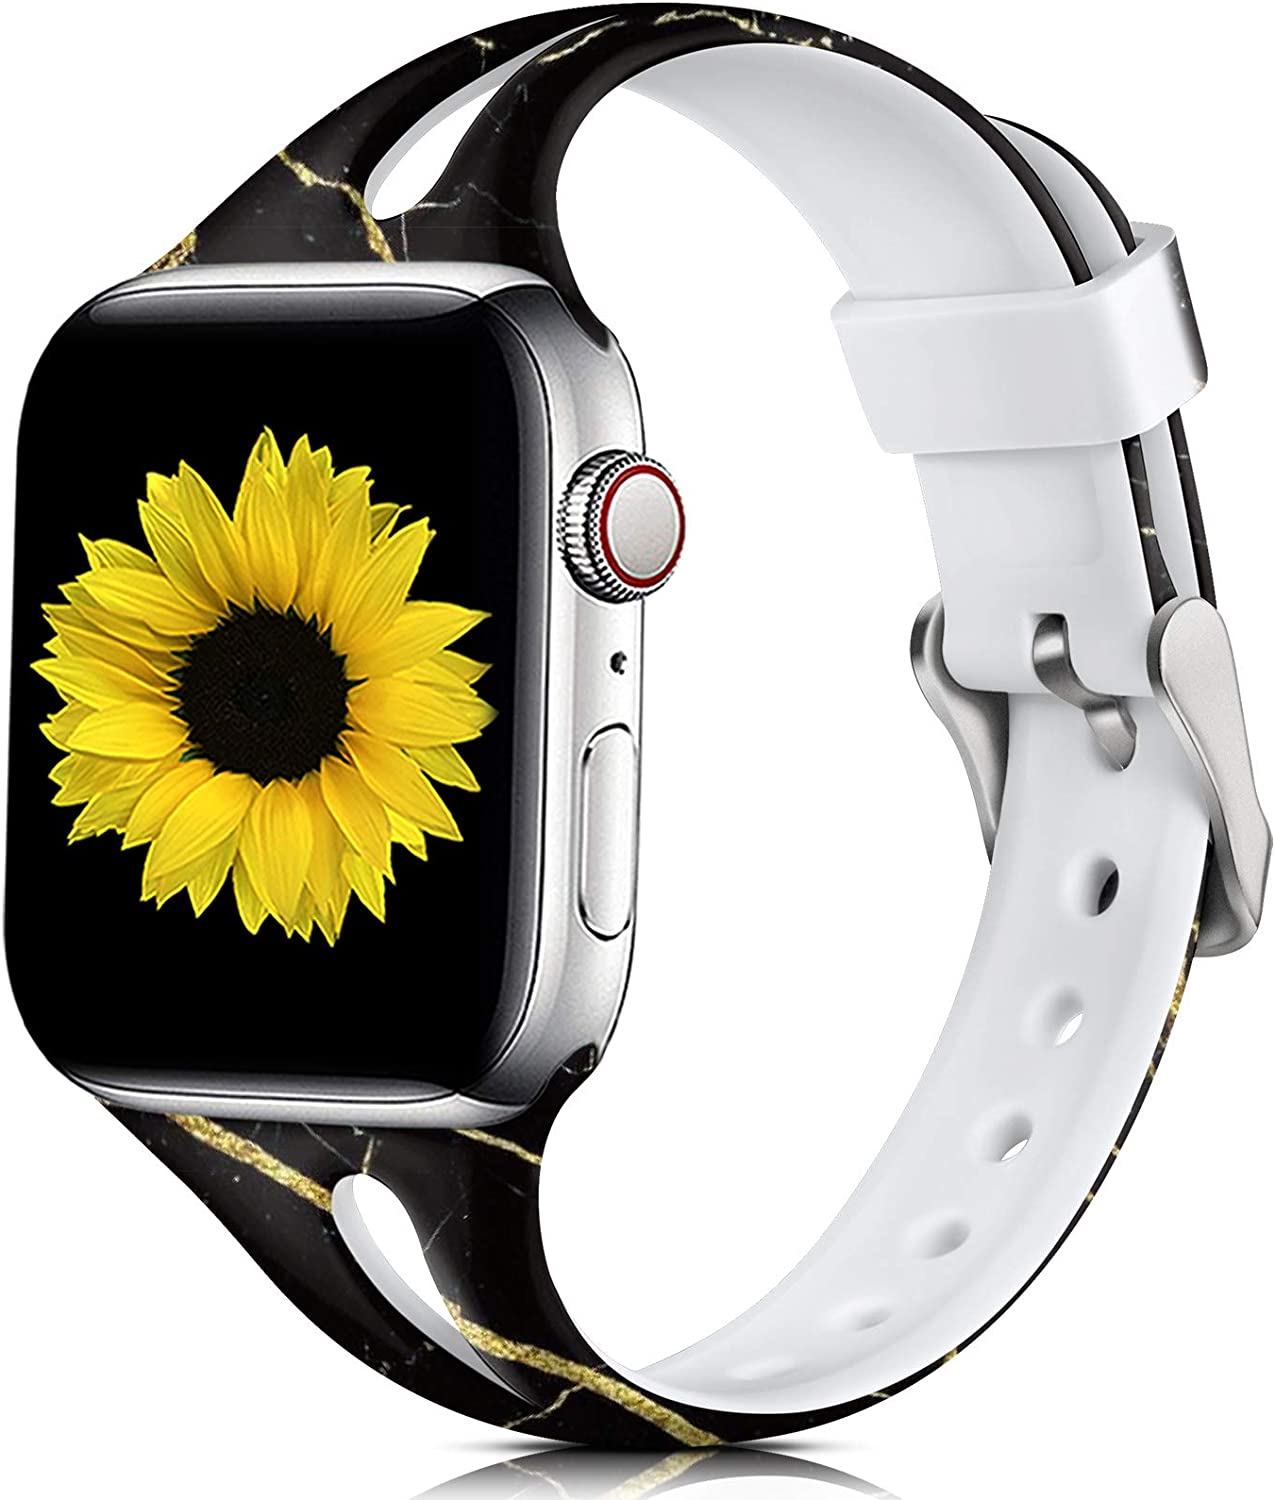 Easuny Floral Bands Compatible for Apple Watch 44mm Series 6 Series 5 4 for Women, Soft Slim Band Thin for Apple Watch SE,iWatch 42mm Series 3 2/1, Printed Silicone Wristband M/L, Black Gold Marble